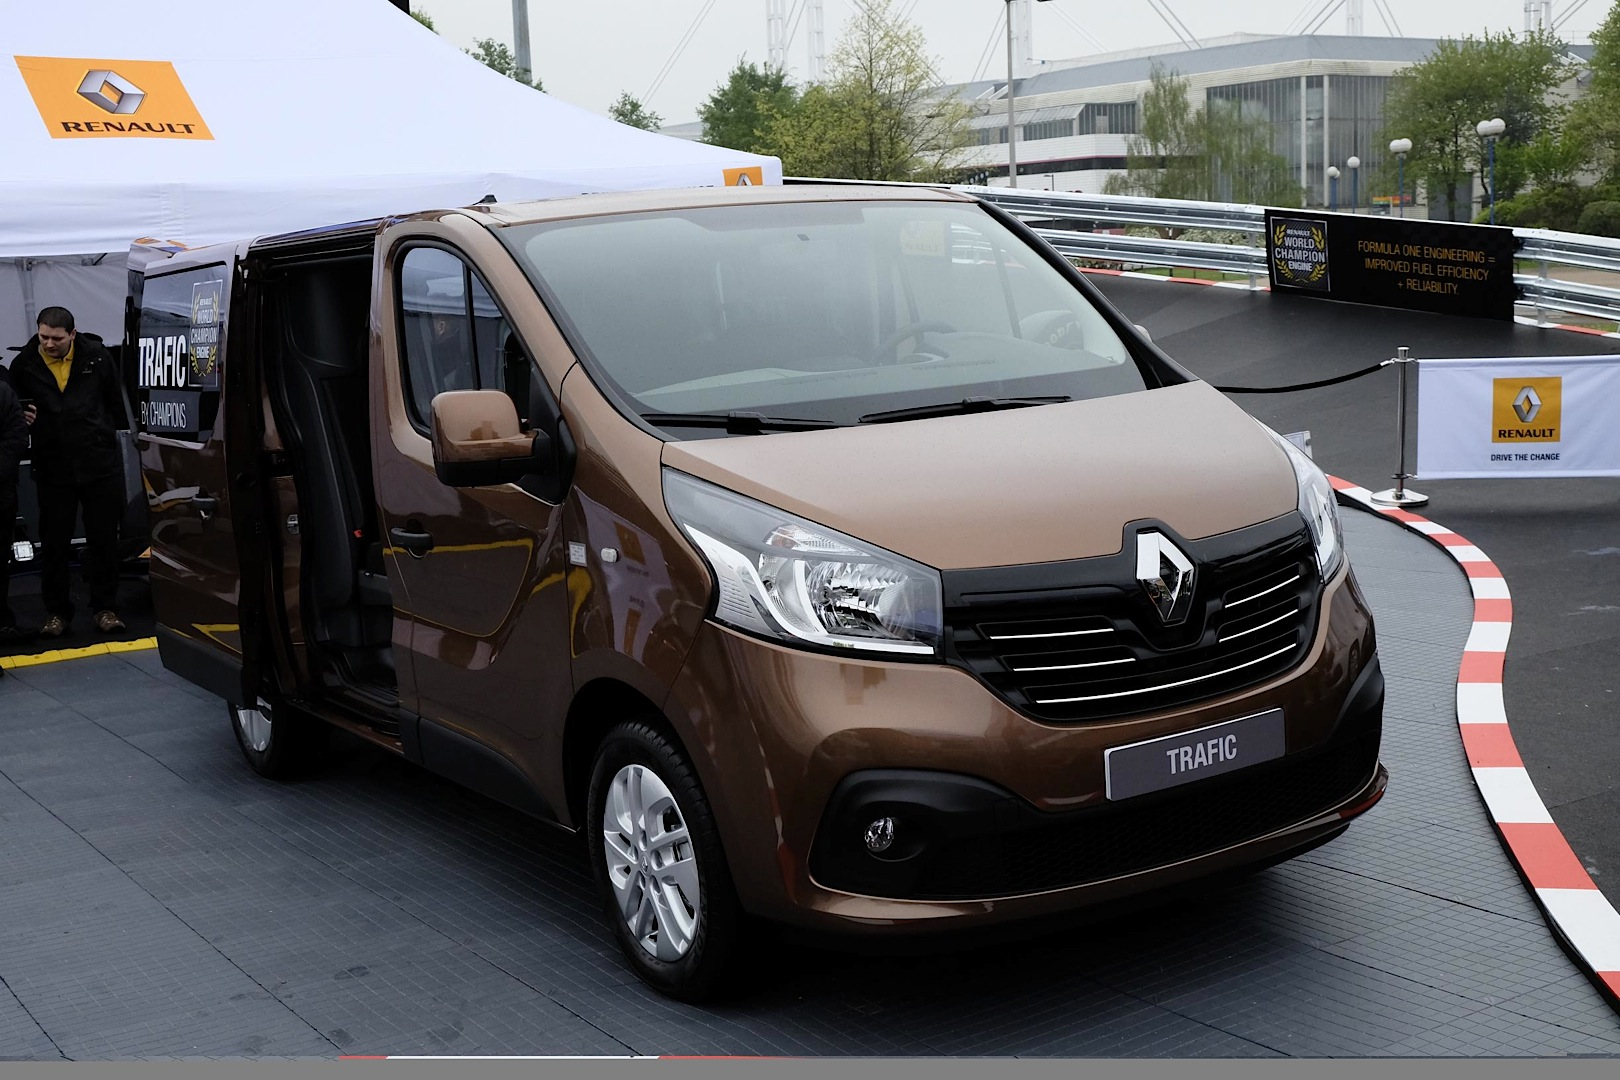 2014 [Renault/Opel/Fiat/Nissan] Trafic/Vivaro/Talento/NV300 - Page 6 New-renault-master-panel-van-unveiled-at-cv-show-photo-gallery_7